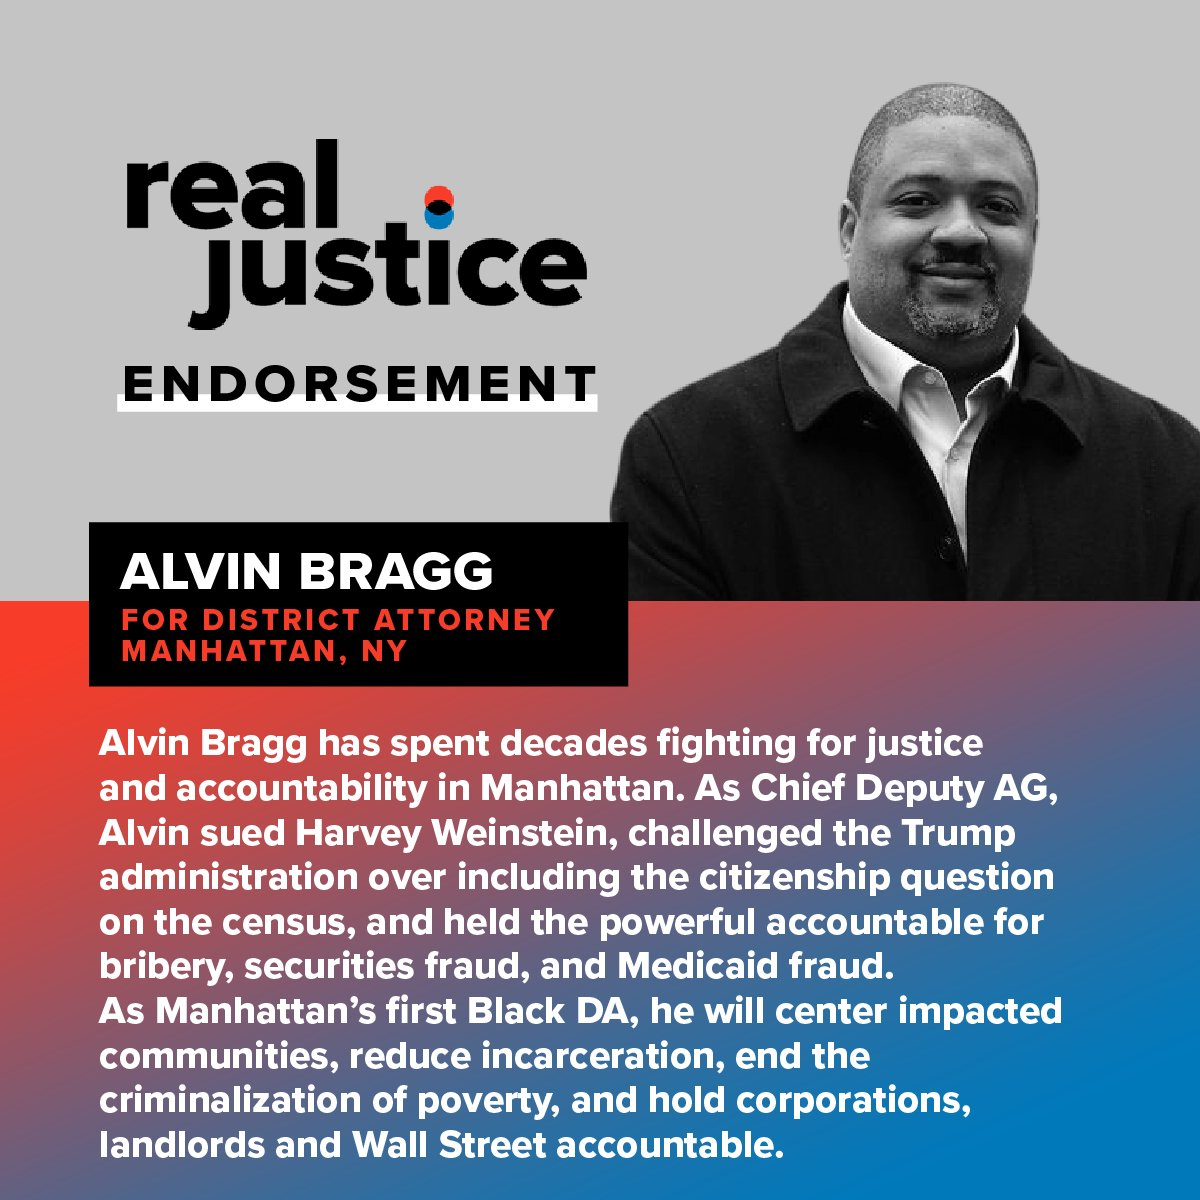 We're proud to endorse @AlvinBraggNYC for Manhattan DA!  Alvin has spent decades fighting for justice and accountability. As the first Black DA in Manhattan's history, we know he will work to center impacted communities.  Help Alvin win big in November: https://t.co/VaO0cSryXO https://t.co/xcoBgdQMoQ